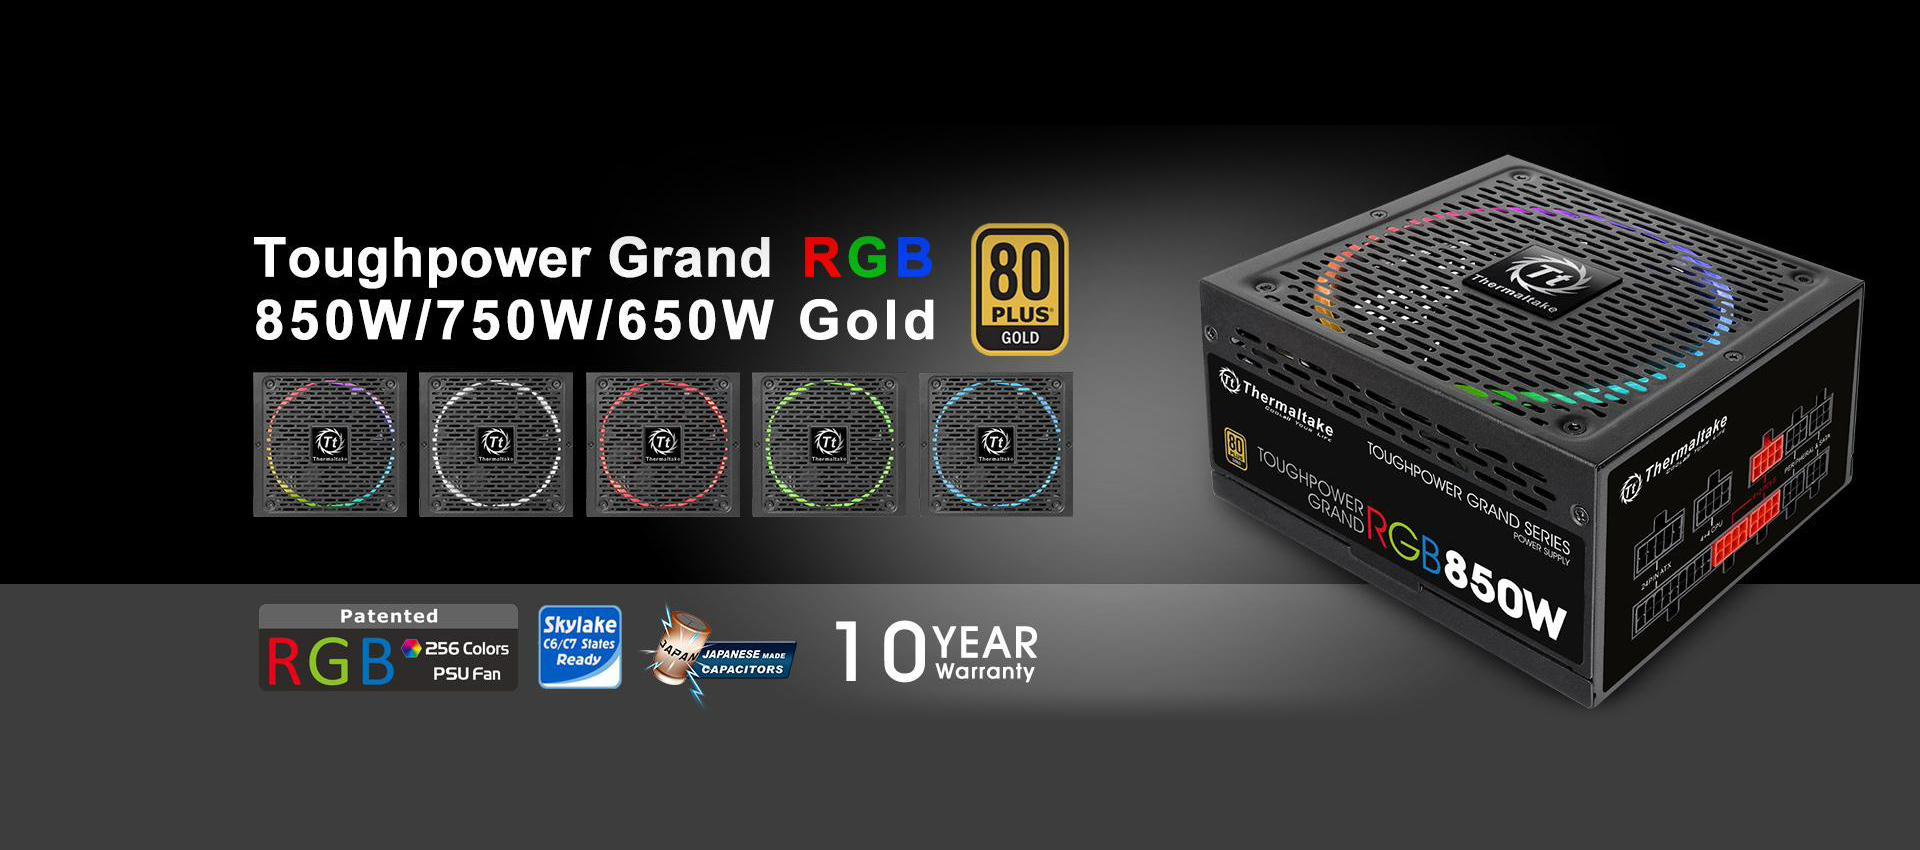 Toughpower Grand RGB 850W Gold Full Modular